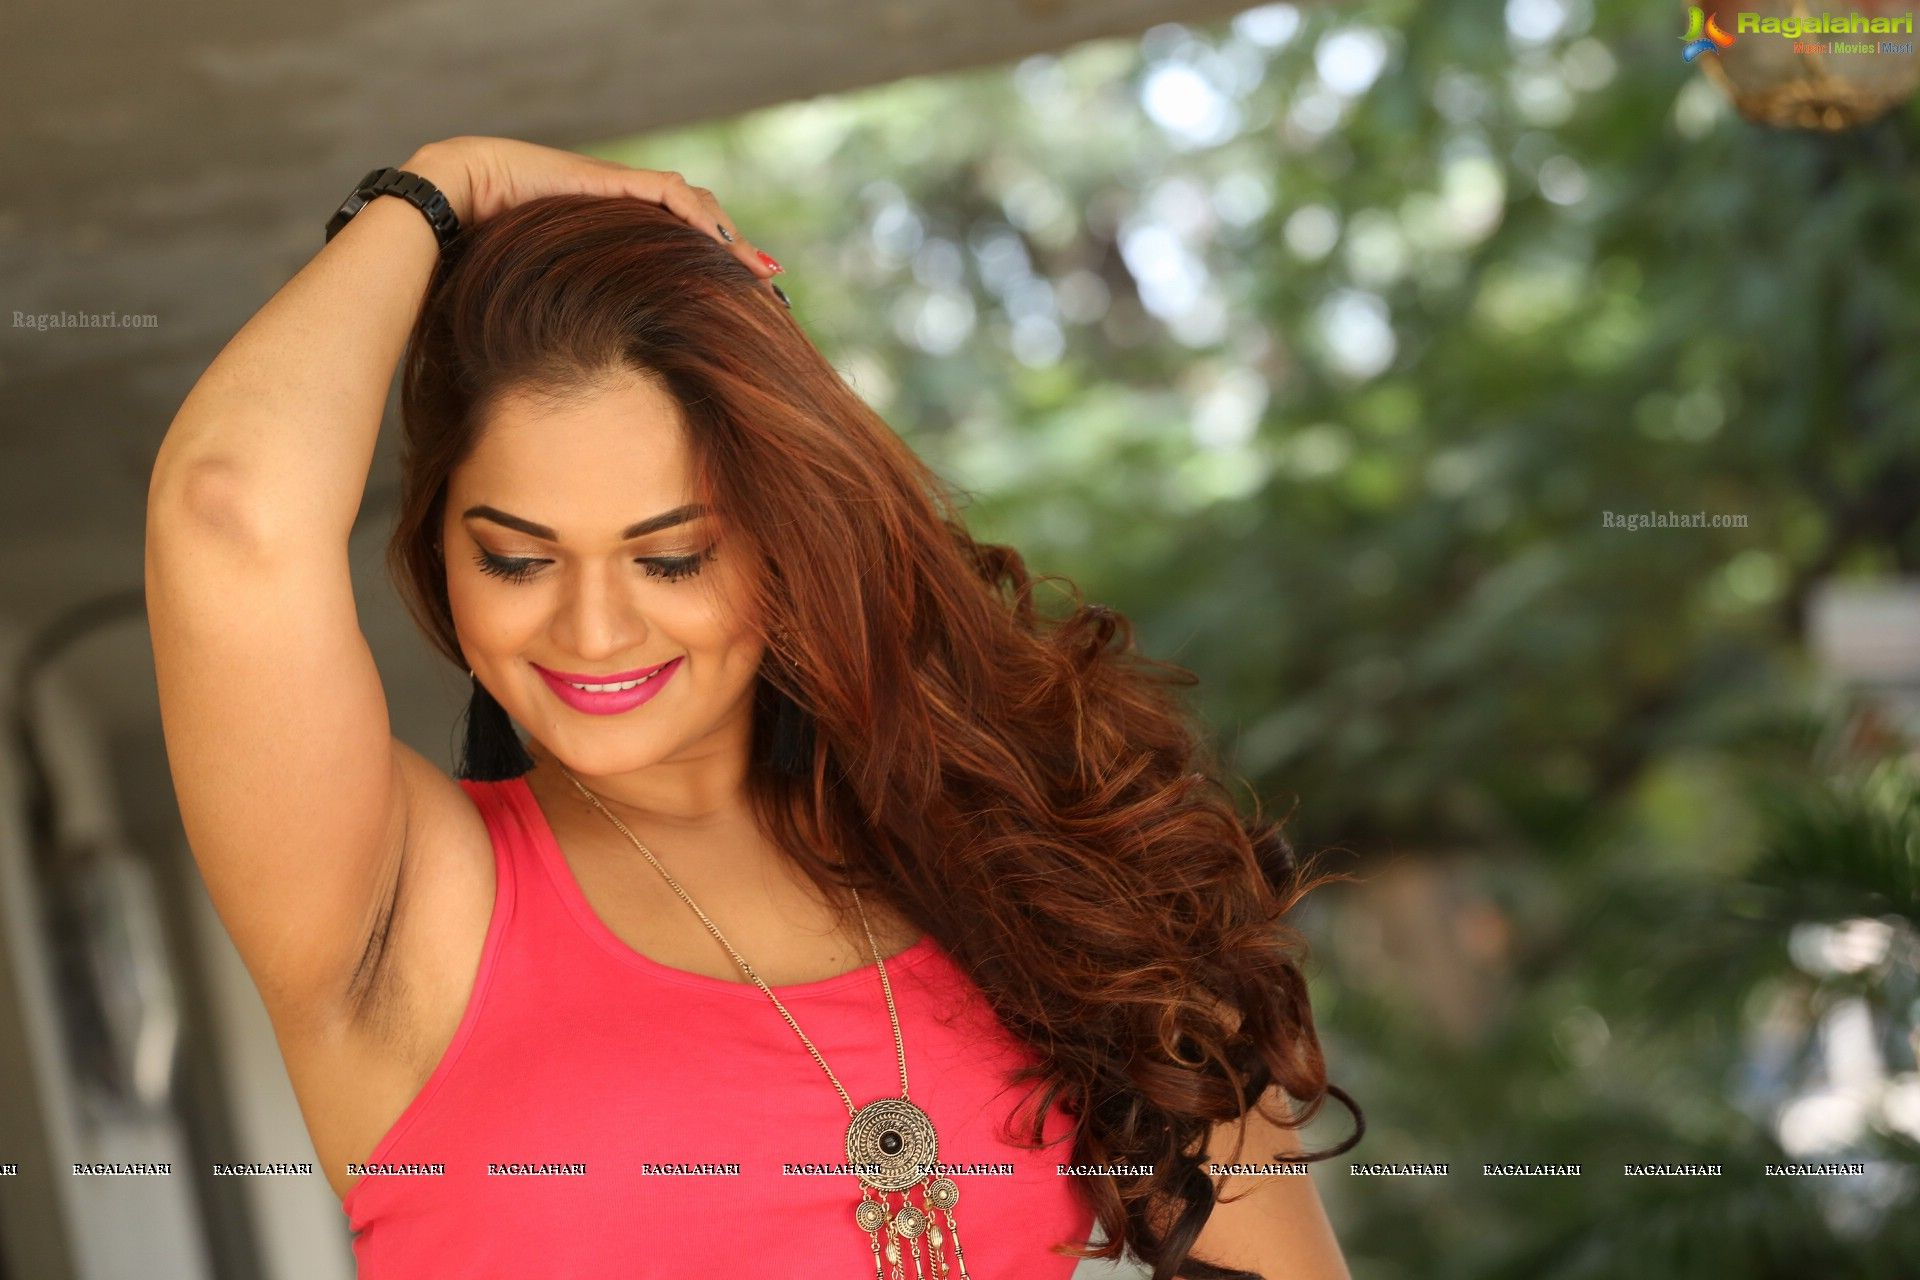 ashwini (hd) image 3 | tollywood heroines gallery,images, photos